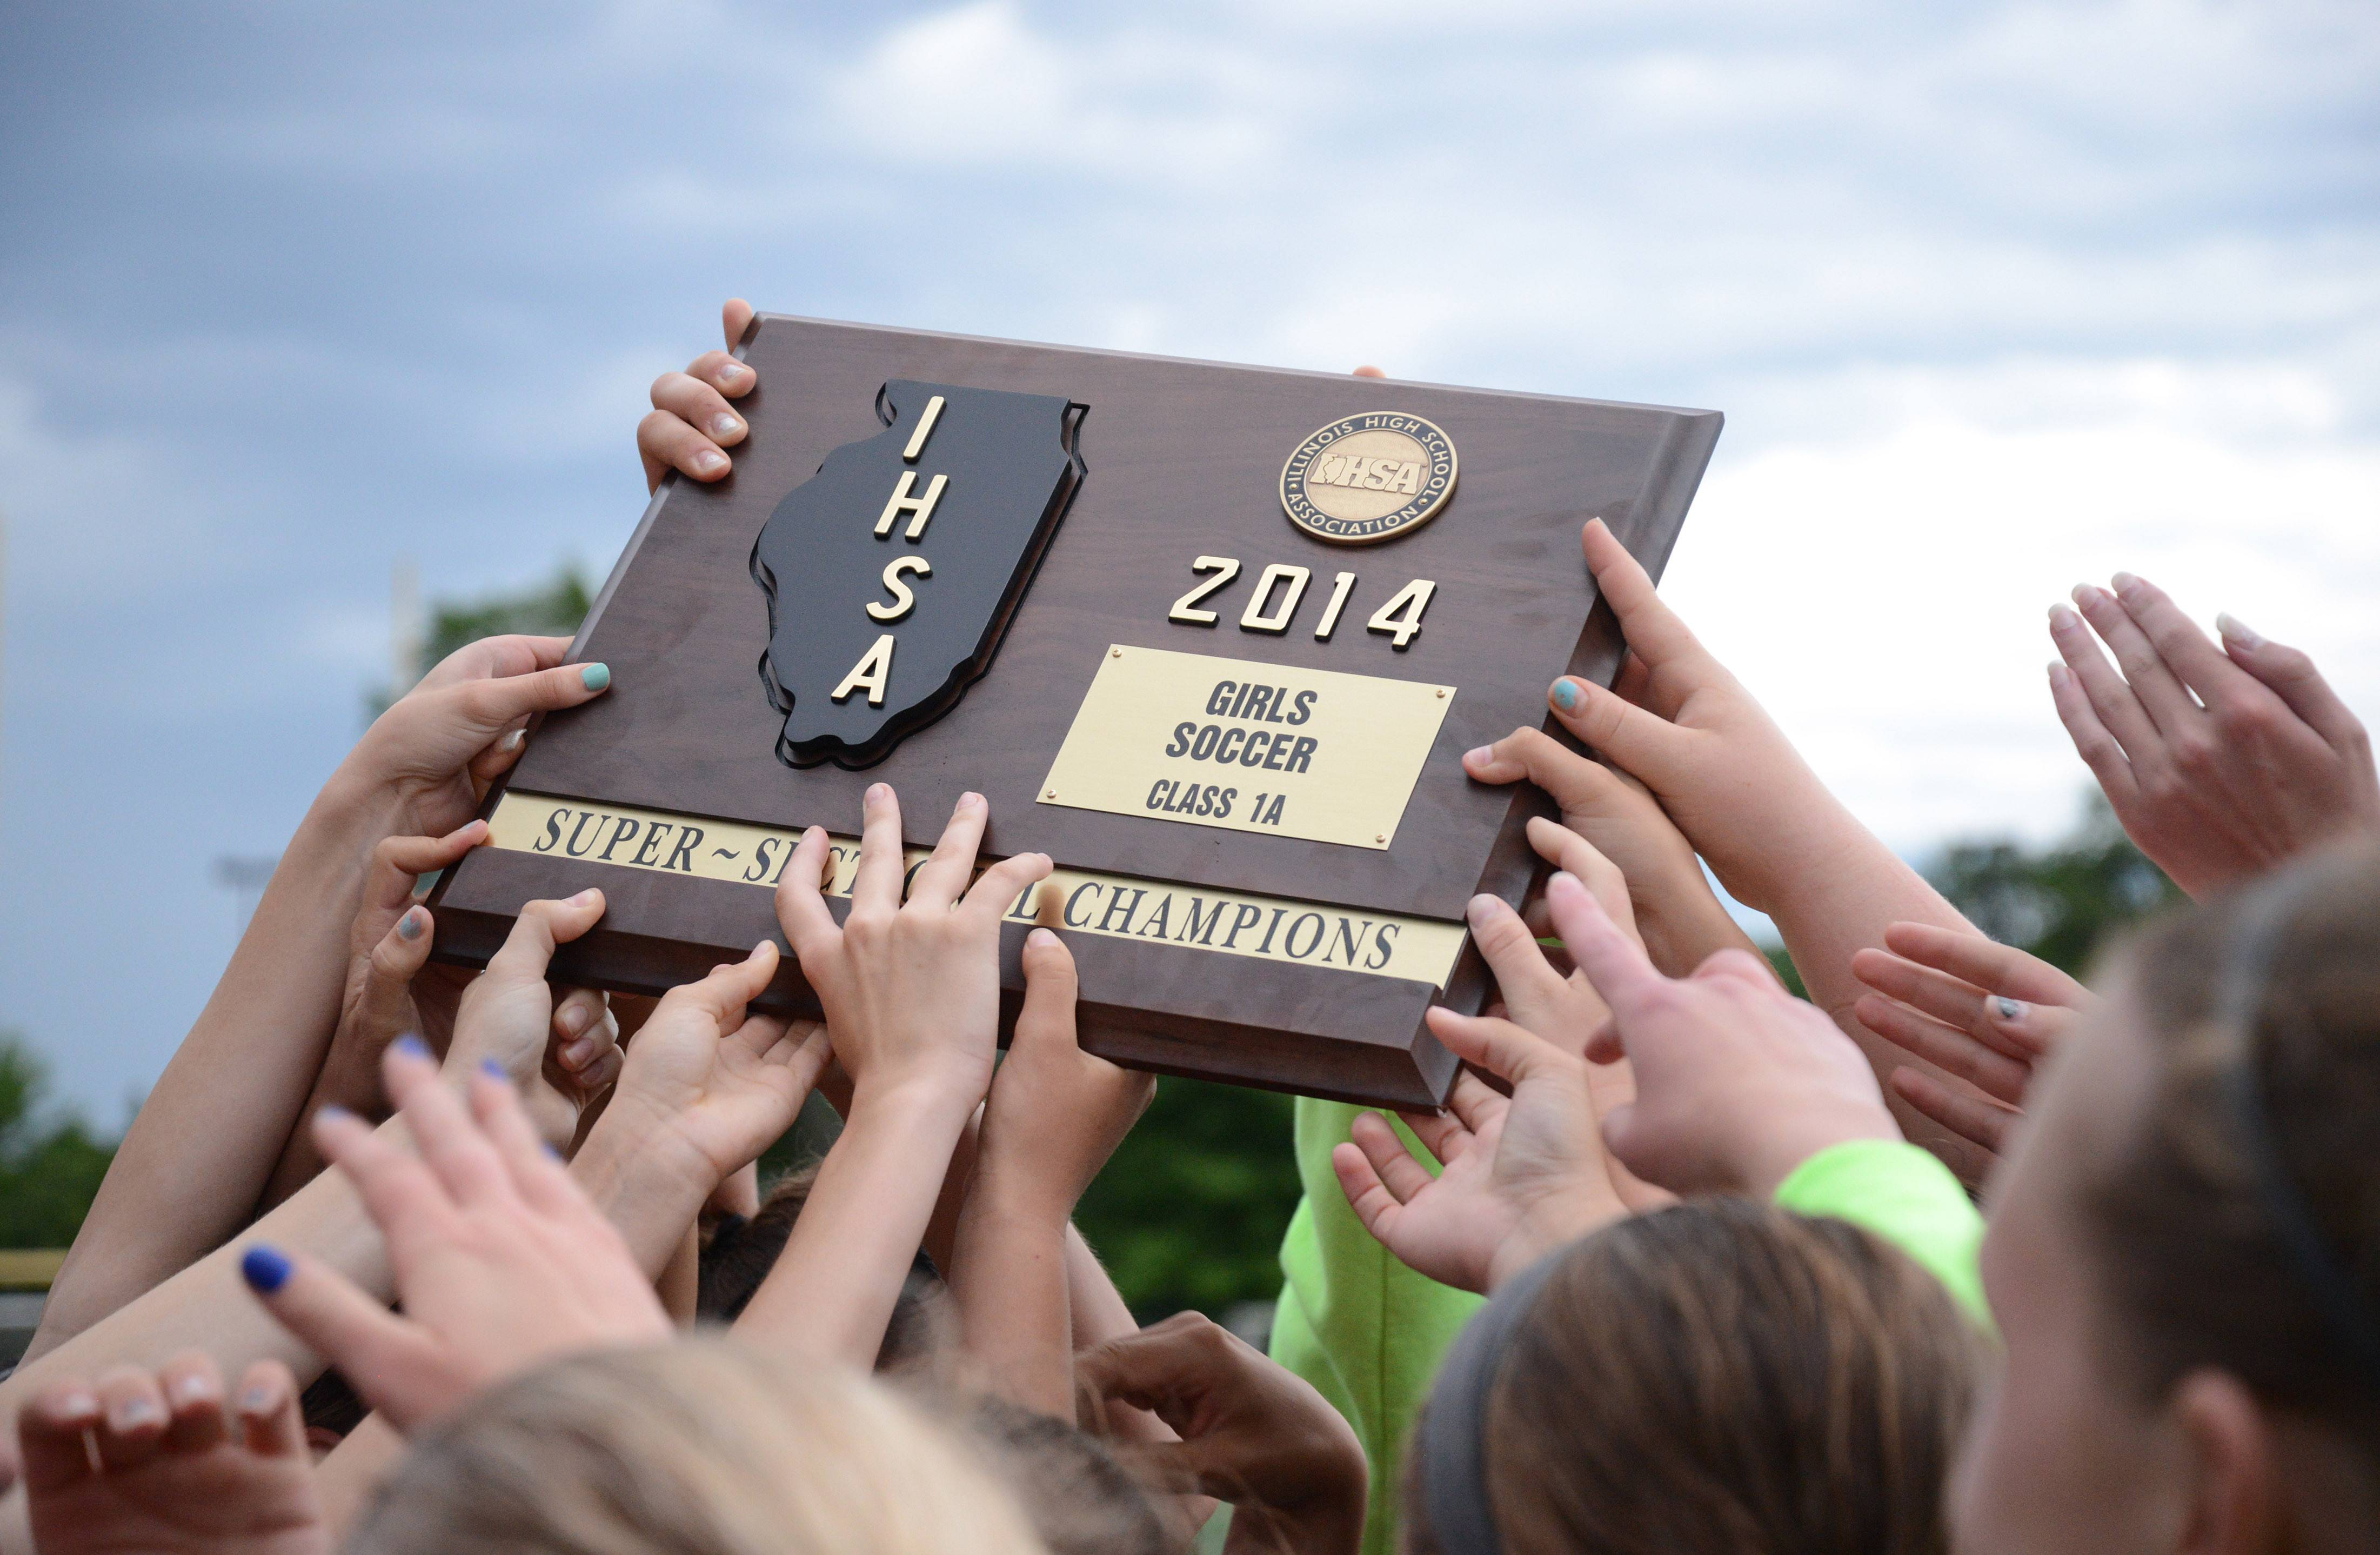 St. Edward teammates swarm their Class 1A supersectional plaque  after winning over Chicago Latin at Concordia University in River Forest on Tuesday, May 27.